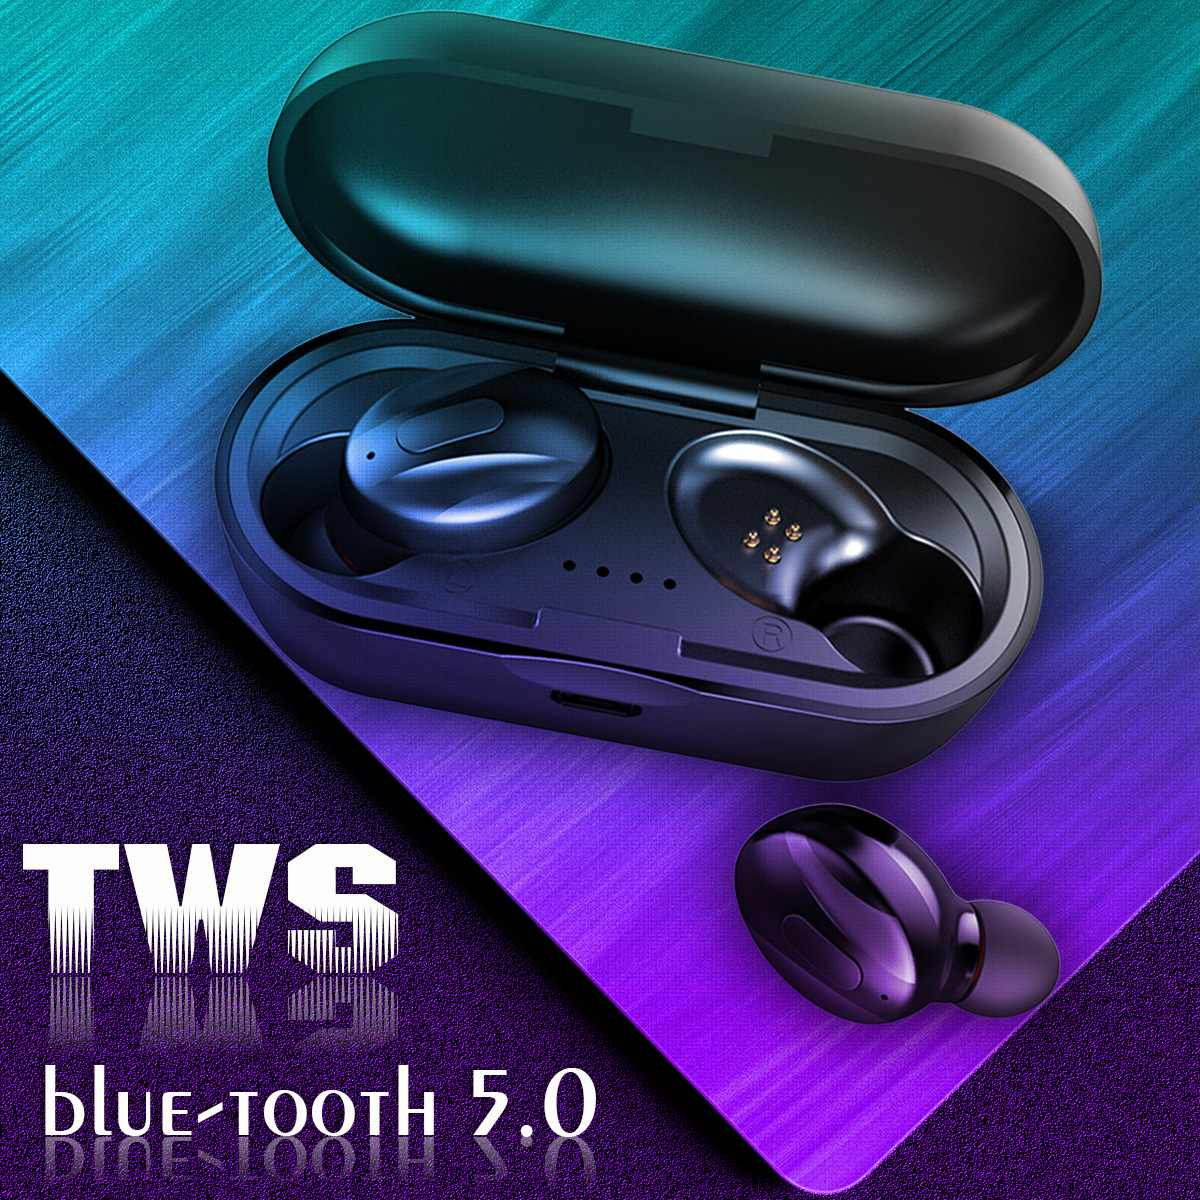 TWS bluetooth 5.0 Earphone Headset Twins Stereo Wireless Earbus HIFI Sound Sport Gaming Earphones with Microphone Charging Box